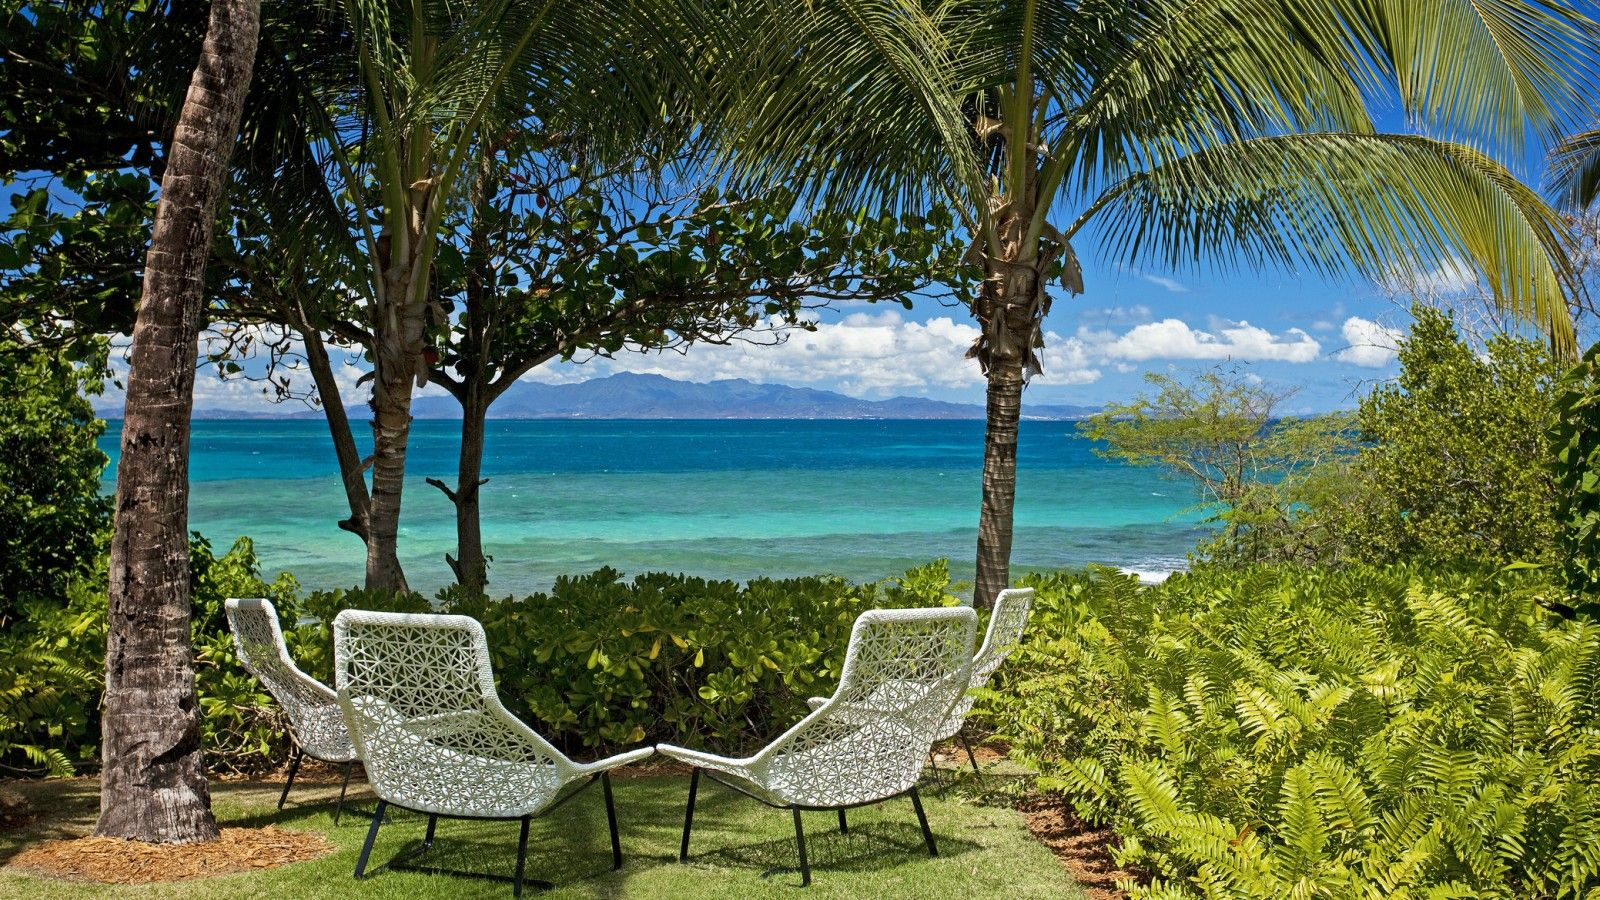 view from the island of Vieques, off the